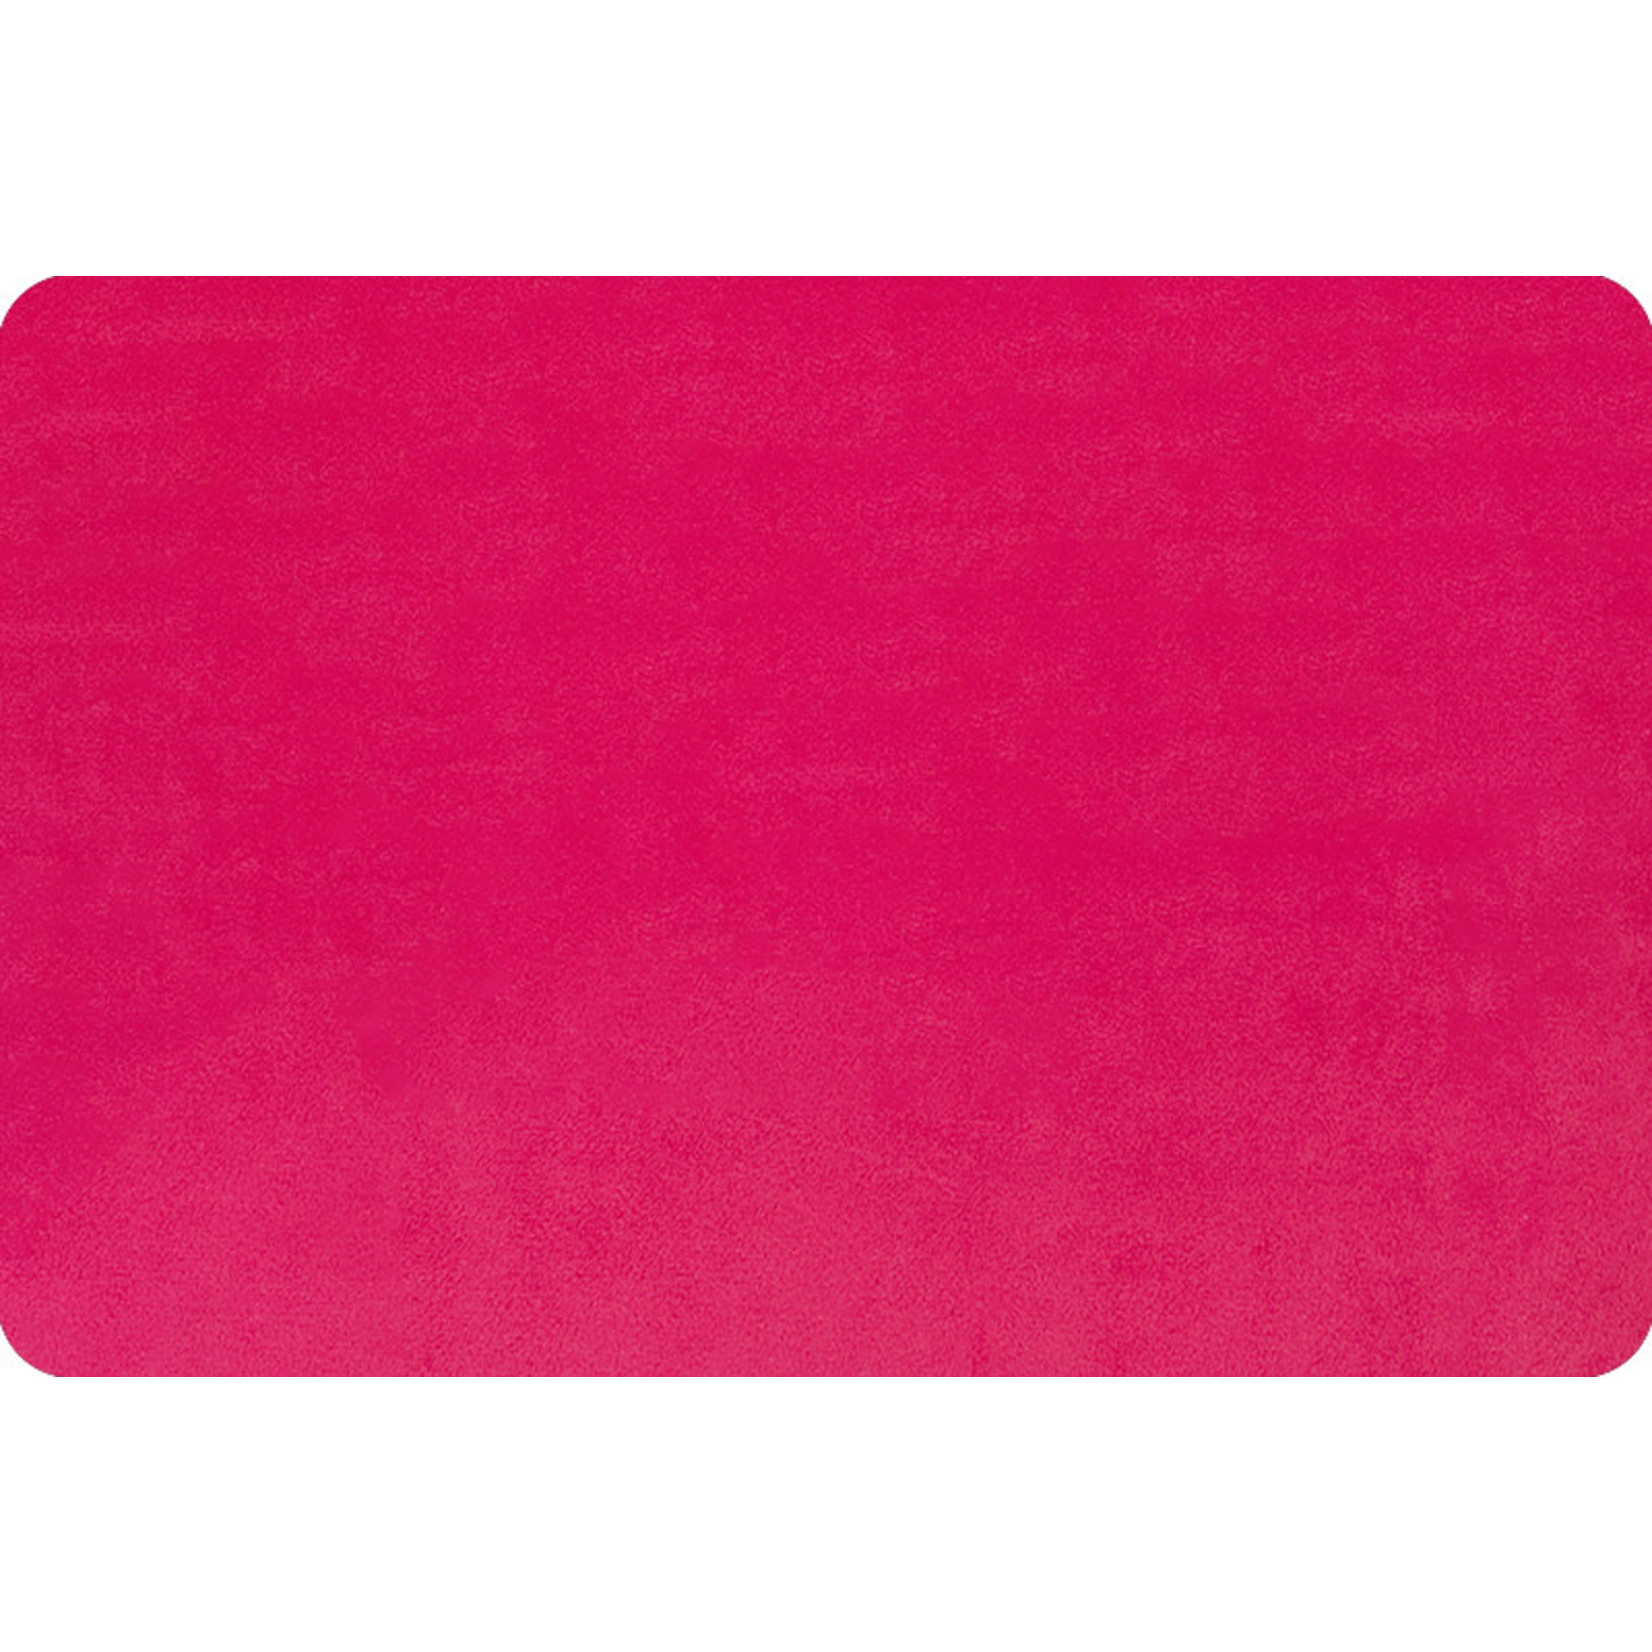 """Shannon Fabrics Minky, Extra Wide Solid Cuddle3, 90"""" Fuchsia, (by the inch)"""